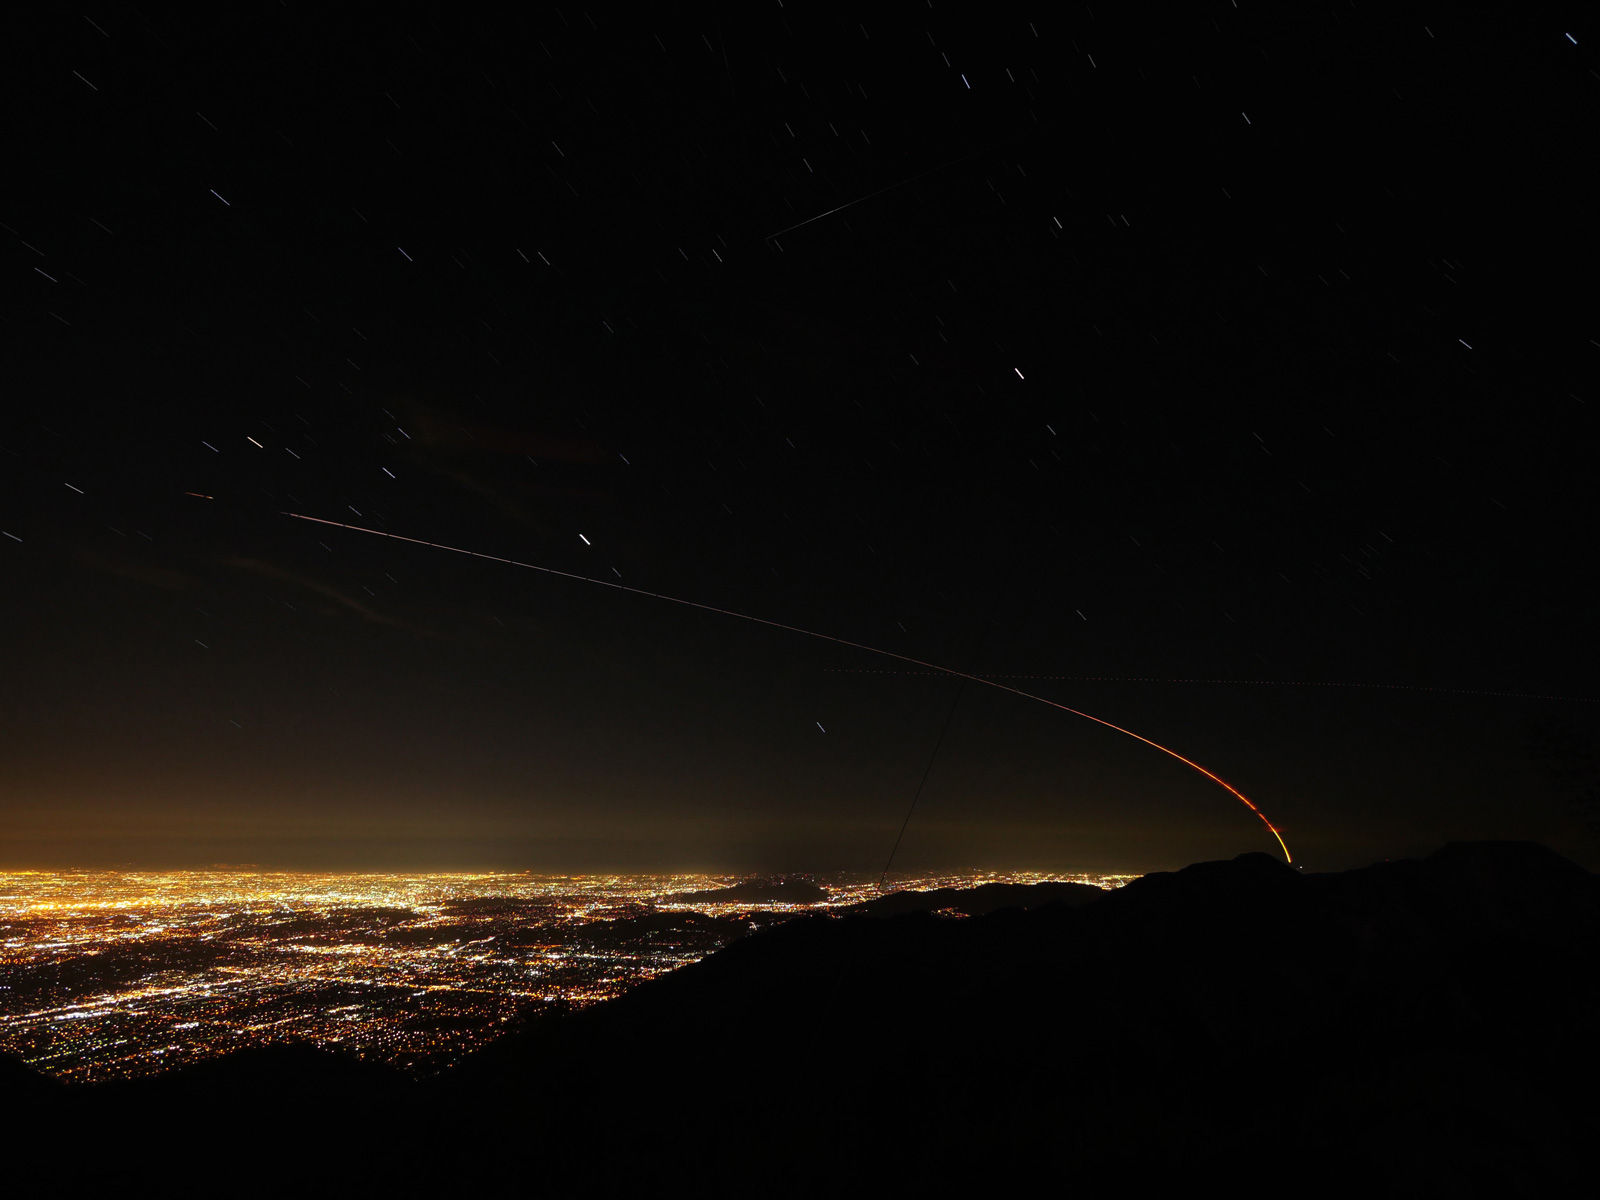 This image shows the trail of NASA's Mars InSight lander over the Los Angeles area after launching from Vandenberg Air Force Base in Central California on May 5, 2018. This is a stack of exposures taken from Mt. Wilson.